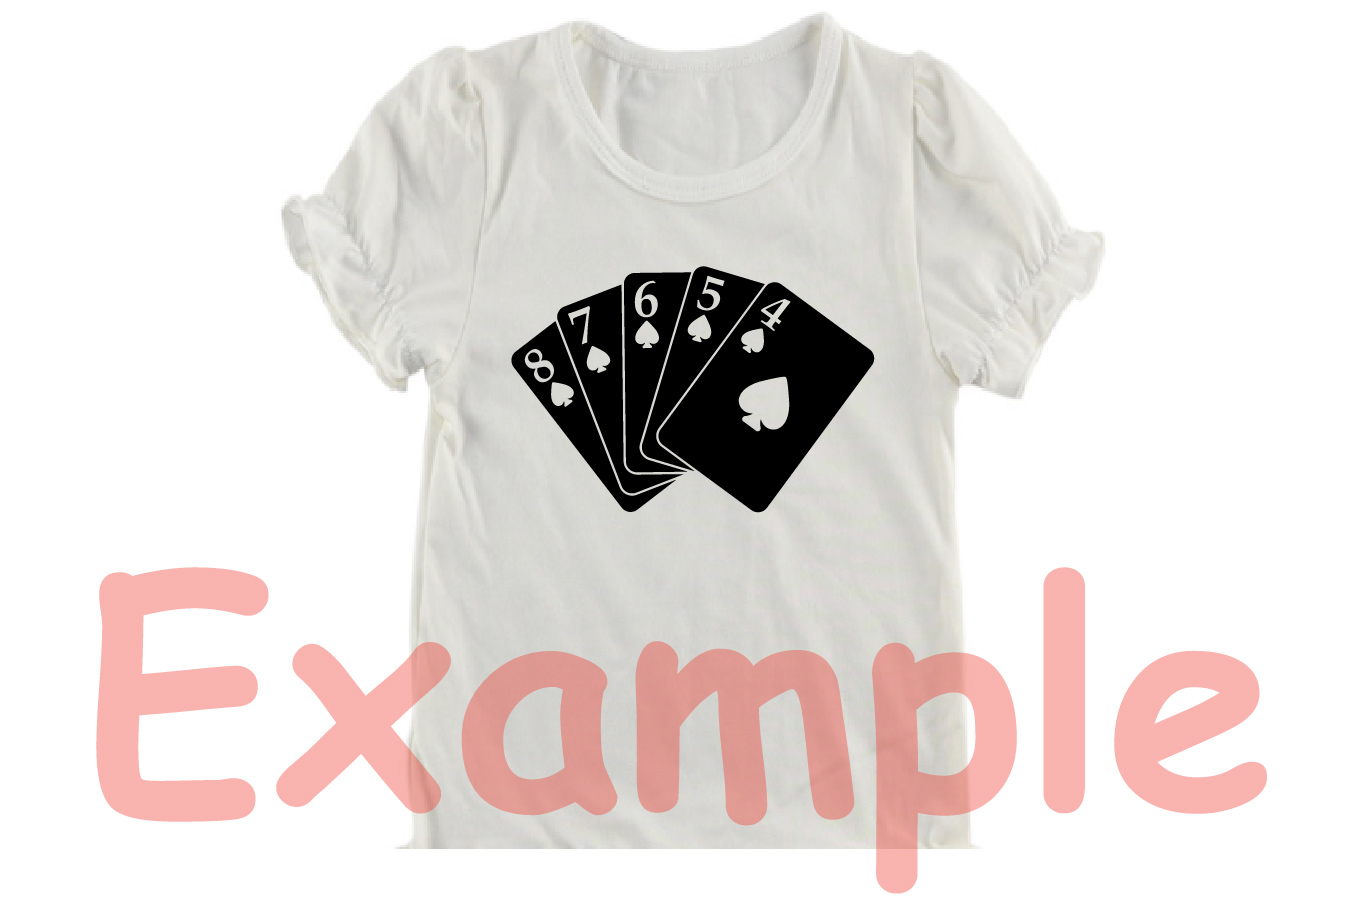 Poker Full House Straight Flush Four of a Kind Straight 742S example image 3